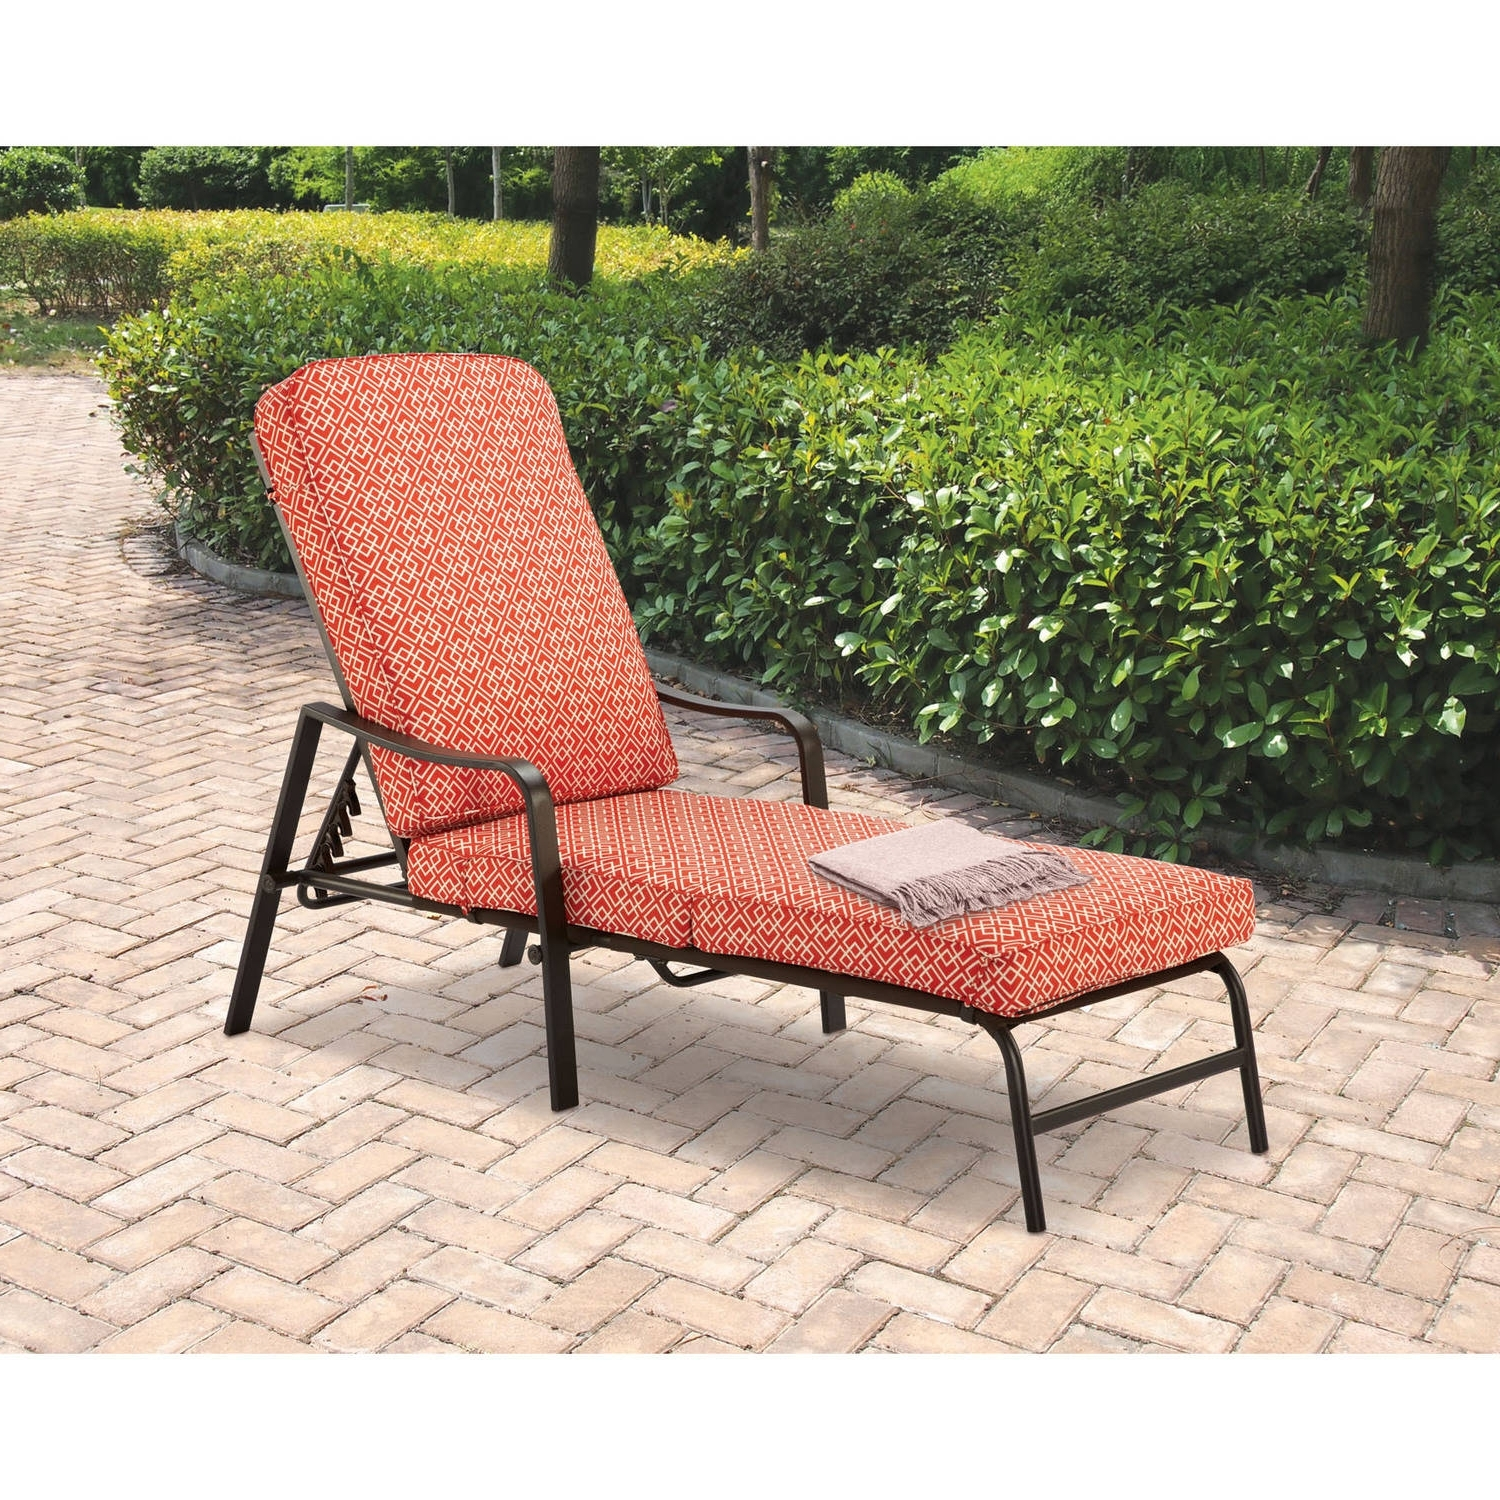 Mainstays Outdoor Chaise Lounge, Orange Geo Pattern – Walmart In 2017 Chaise Lounge Chairs At Walmart (View 7 of 15)